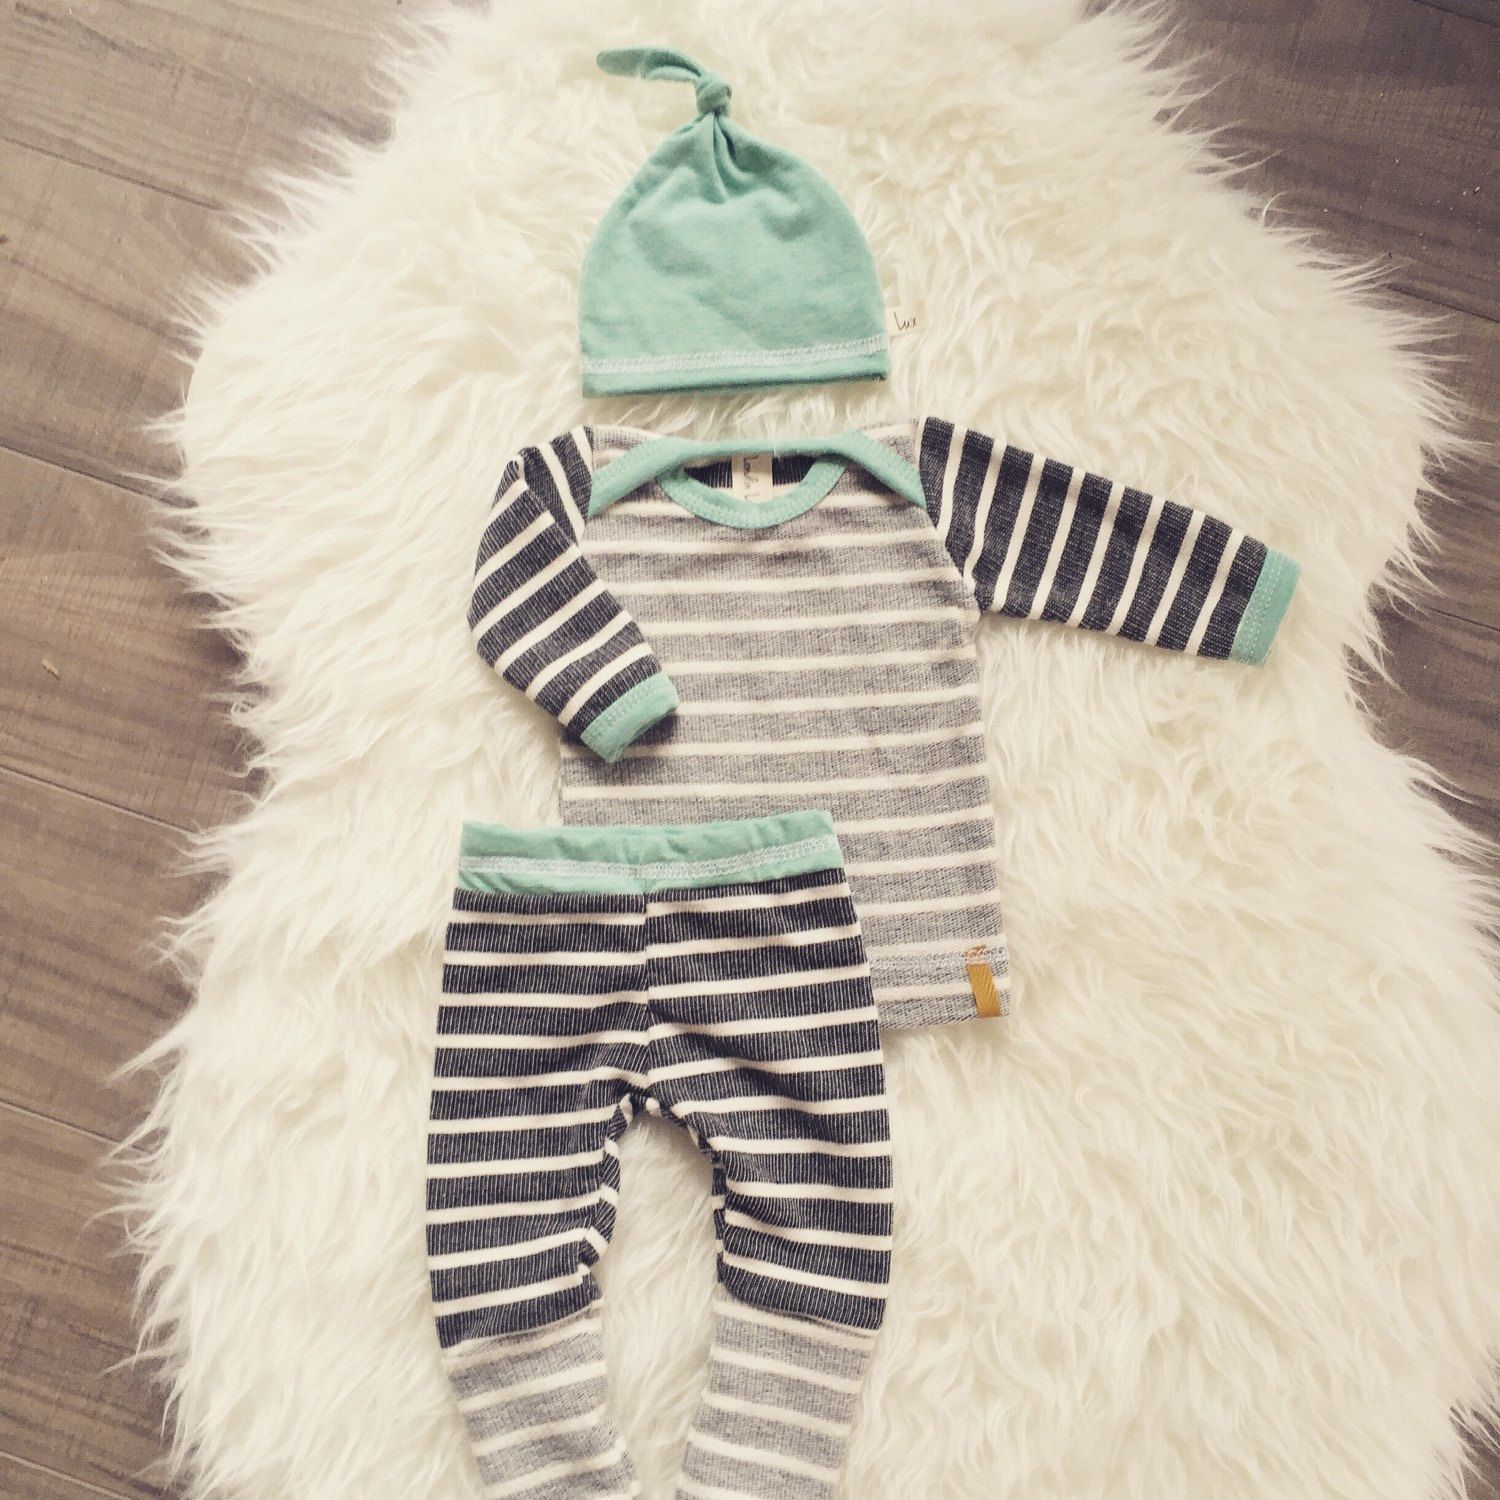 LONDIN LUX baby boy outfit! Perfect outfit to bring home baby in ...